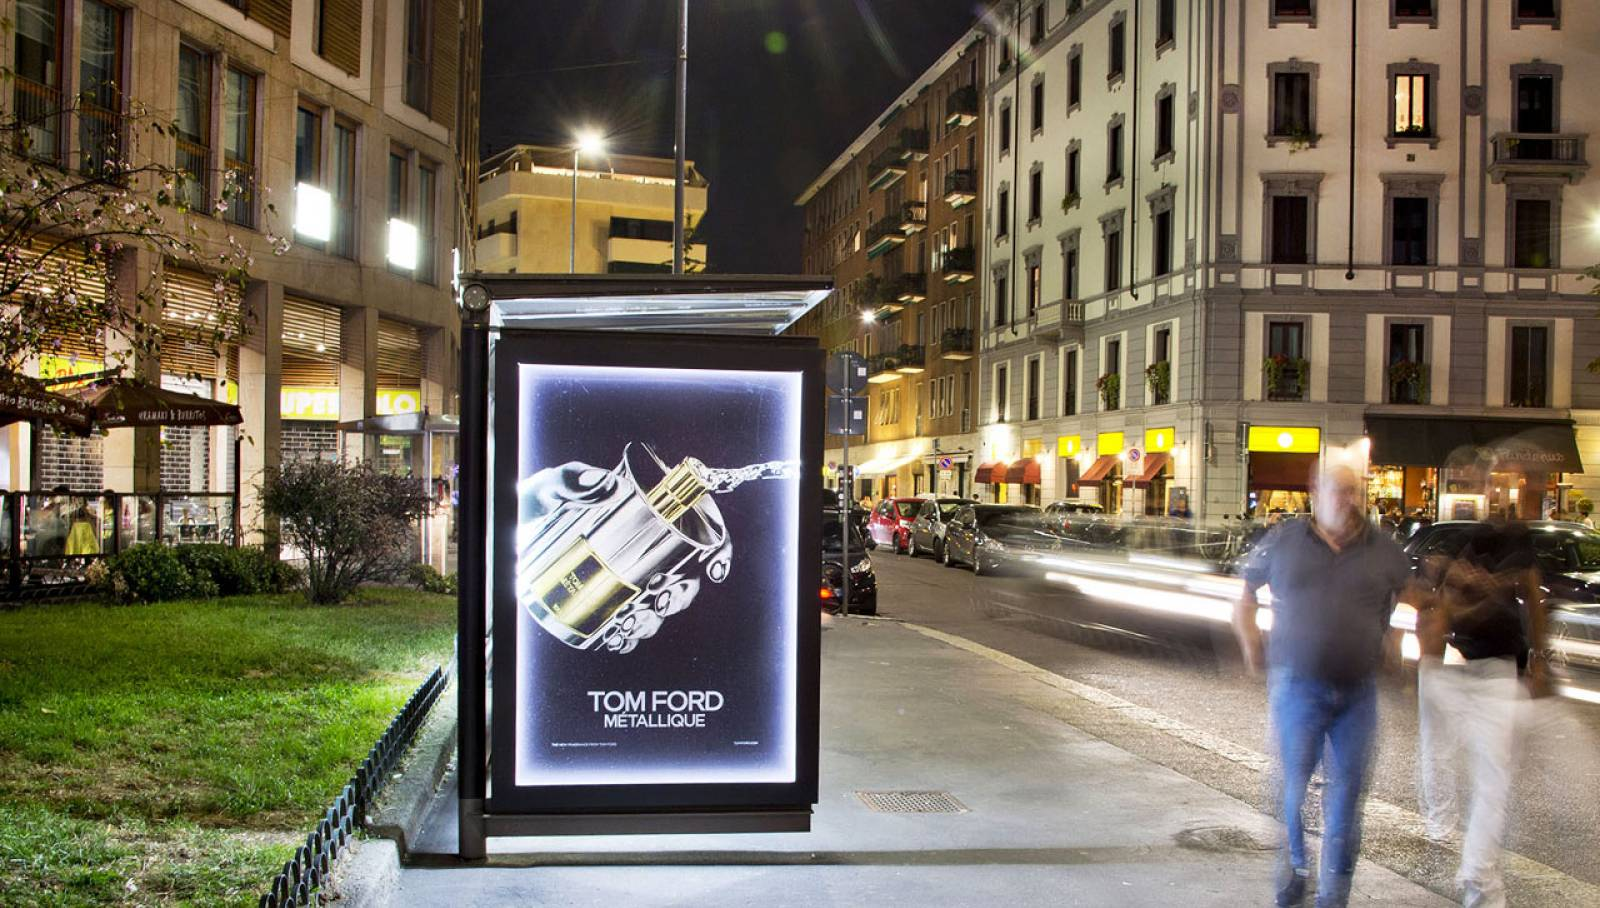 OOH advertising Milan bus shelters IGPDecaux for Tom Ford